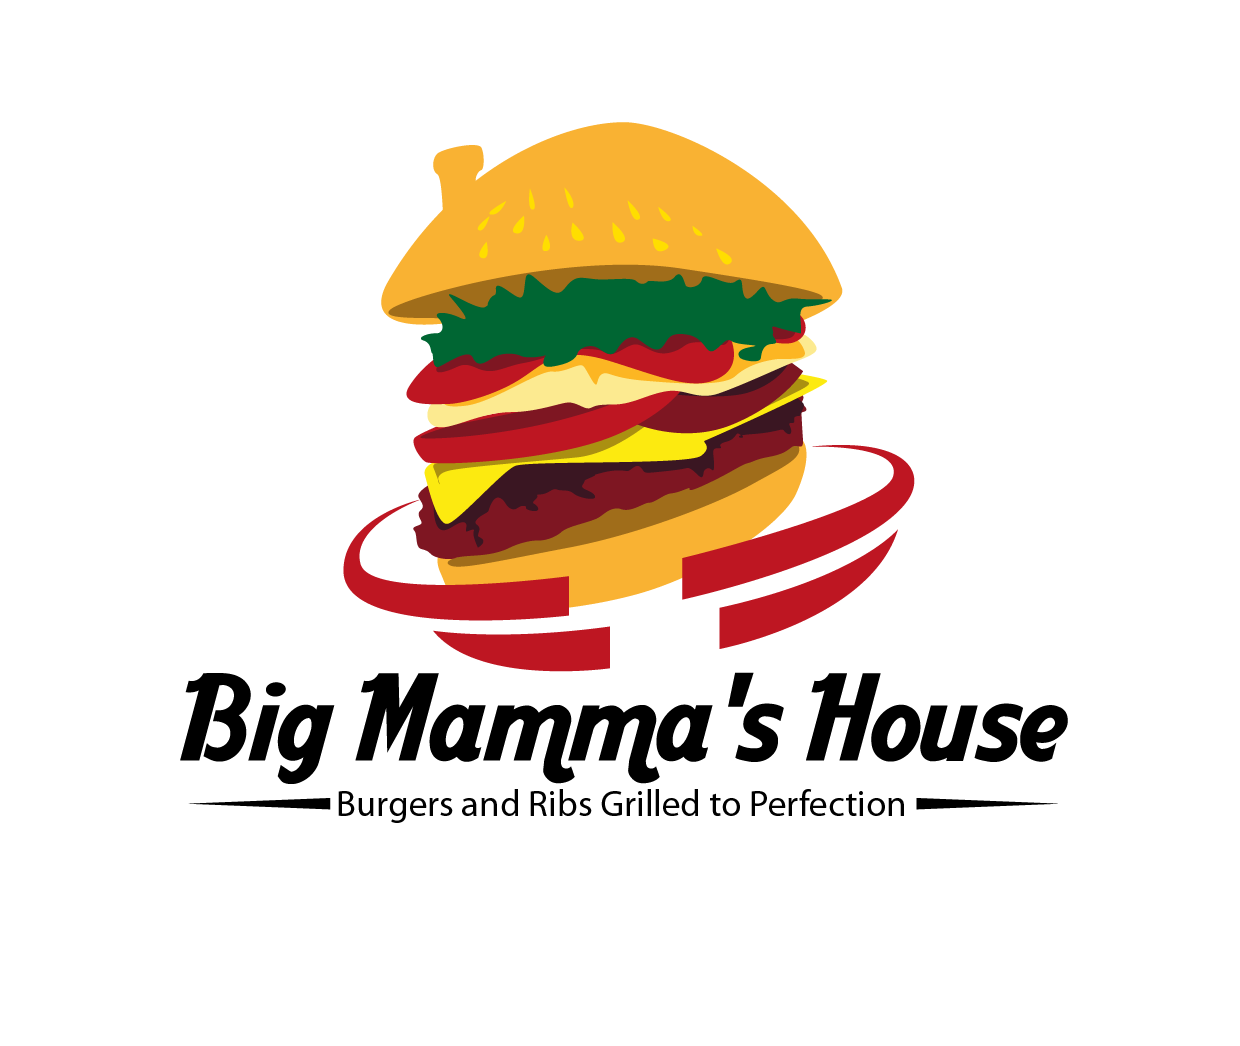 Logo Design by Ndaru Ap - Entry No. 44 in the Logo Design Contest Captivating Logo Design for Big Mamma's House.